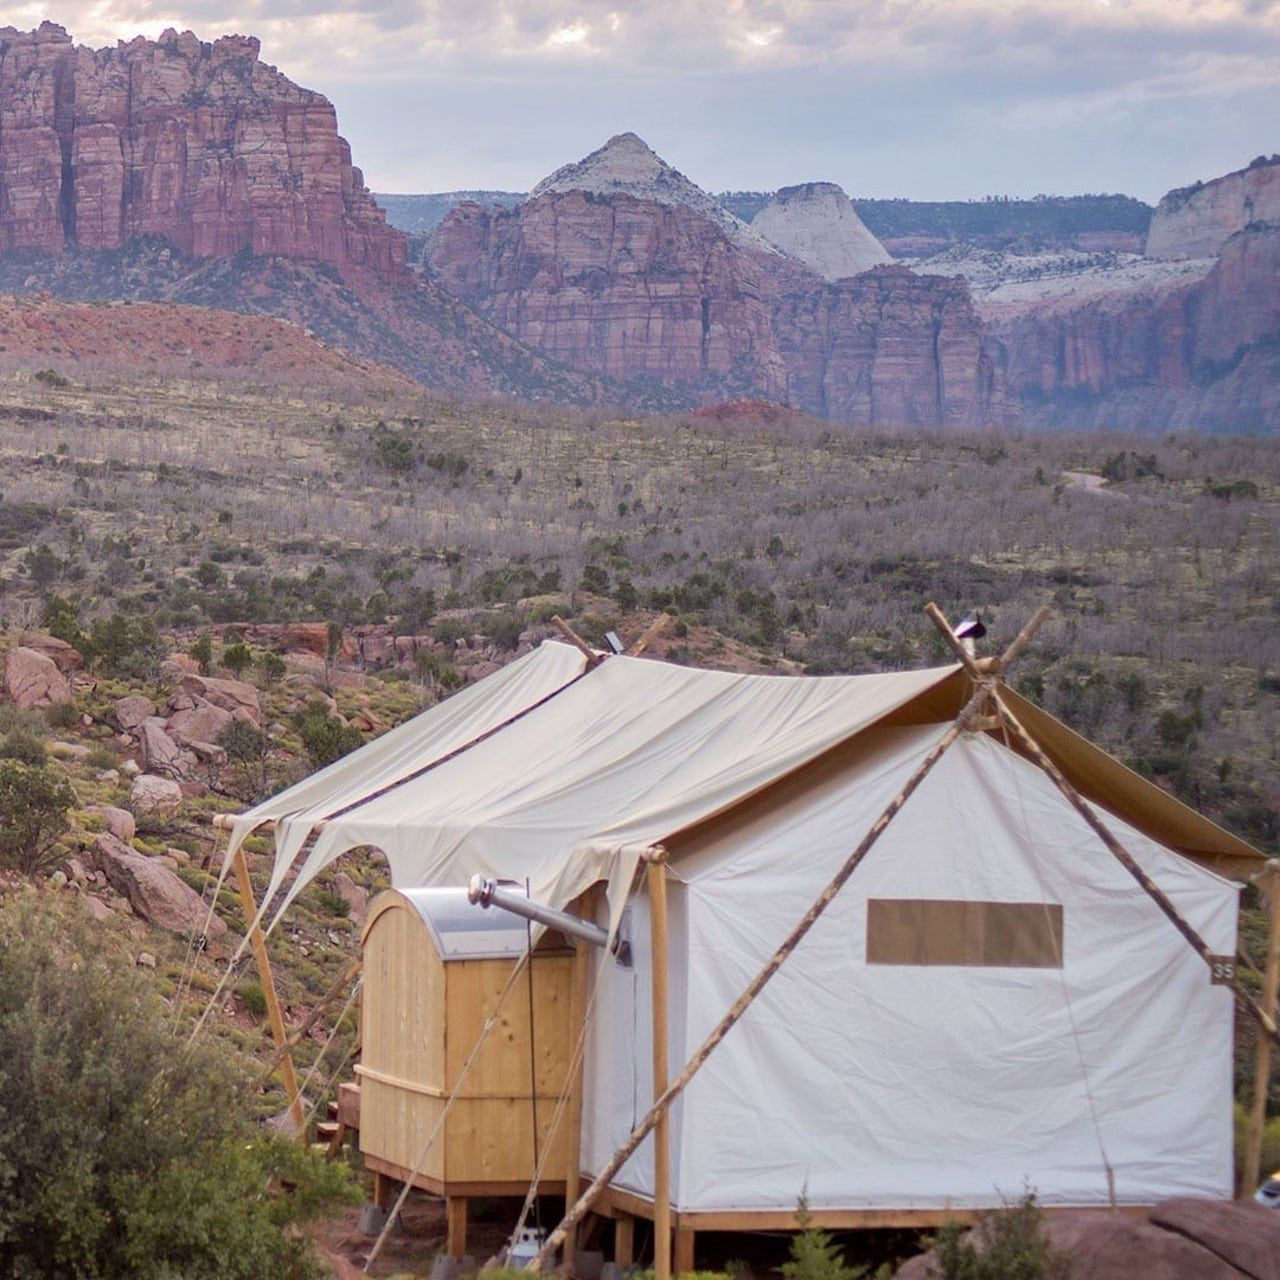 Glamping by the Grand Canyon